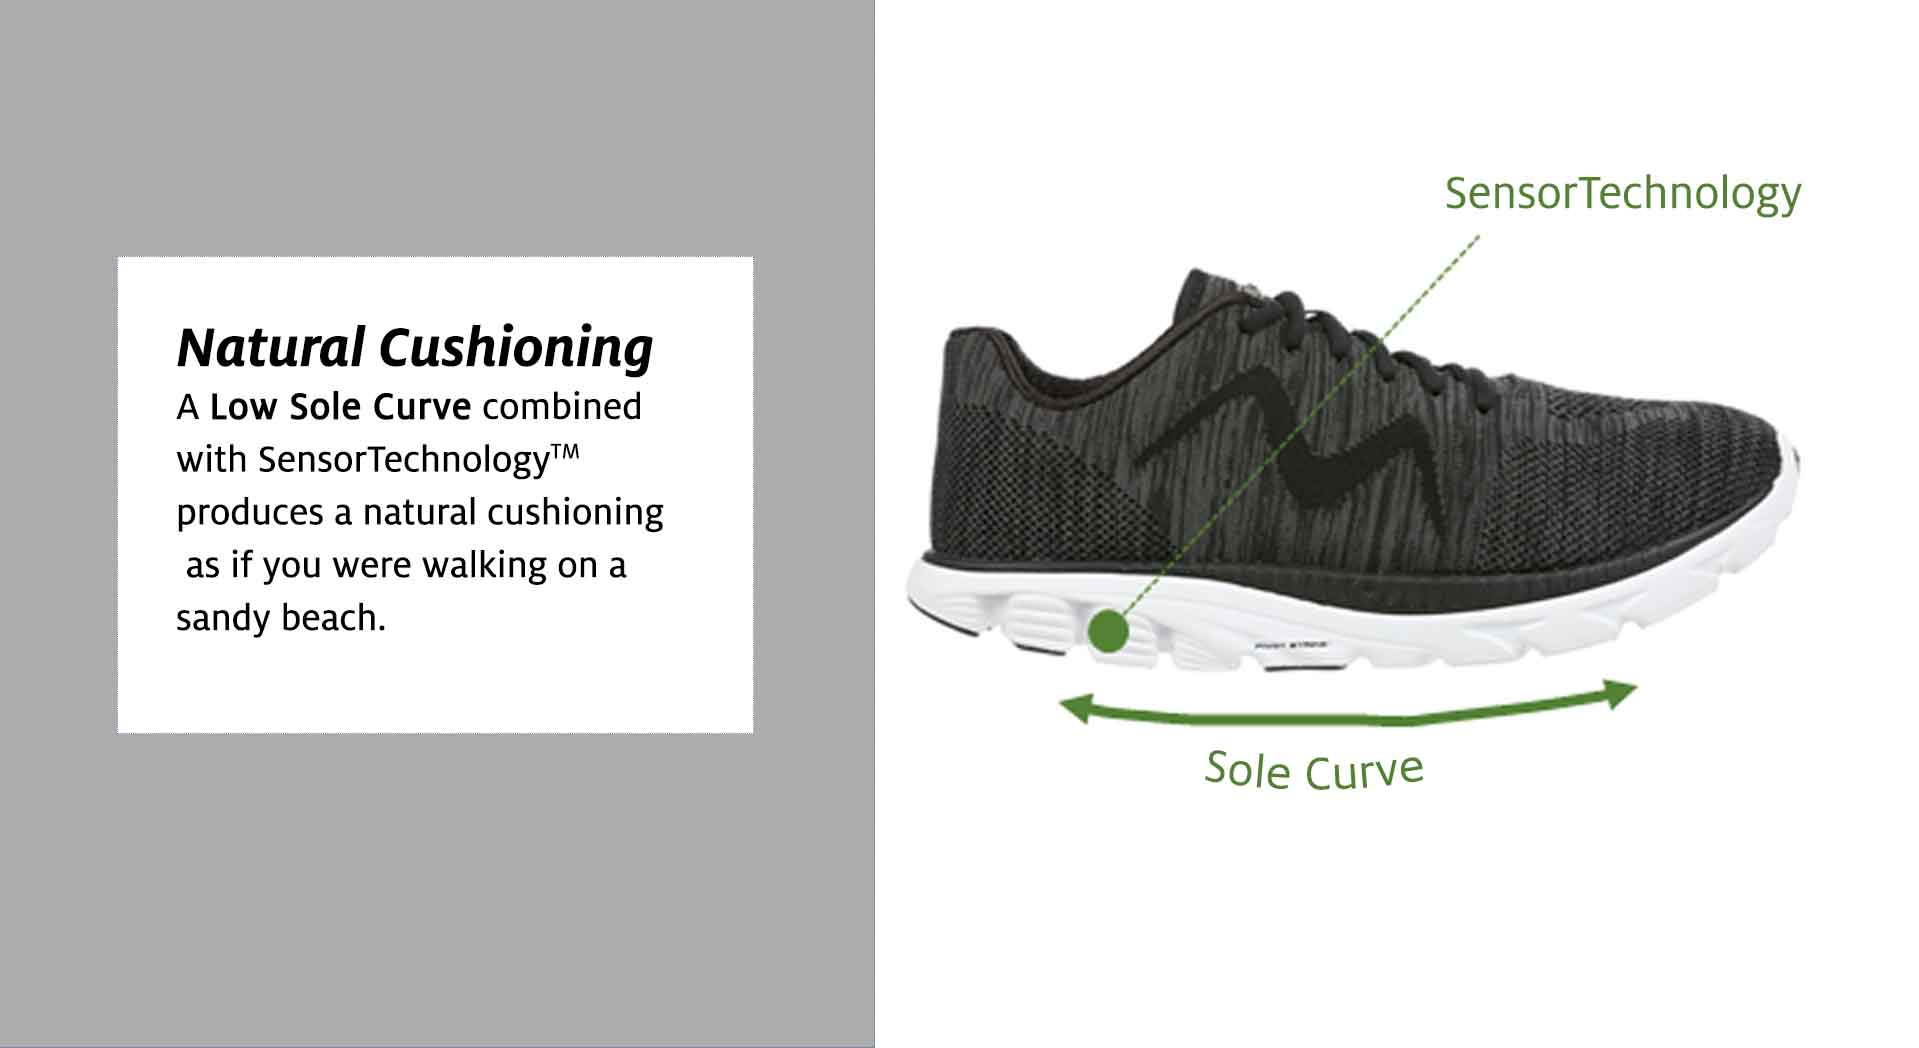 Low Sole Curve